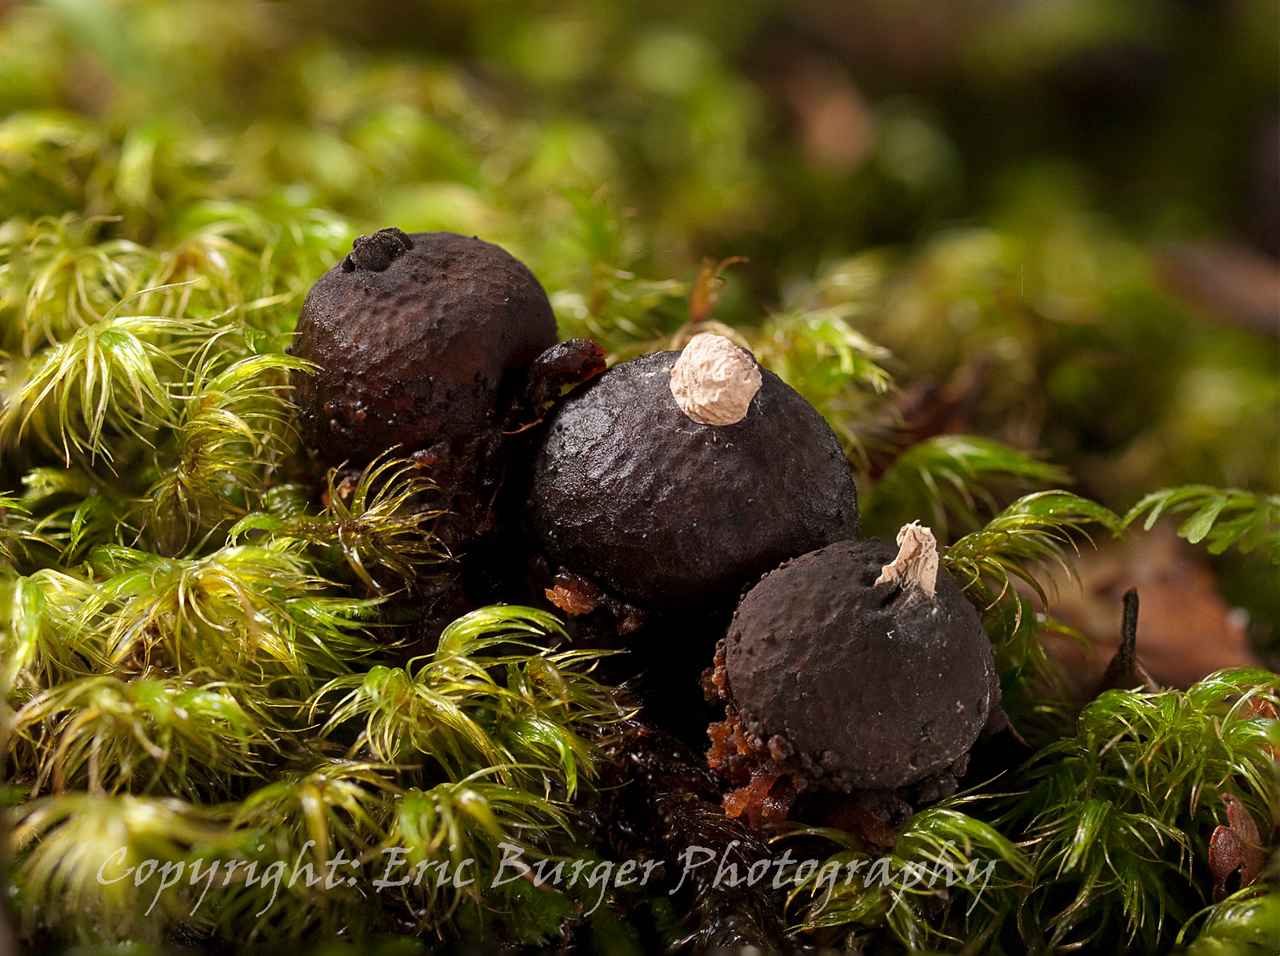 Calostoma rodwayi - A common puffball found in beech forests. A 5 photo stack, twin flash.